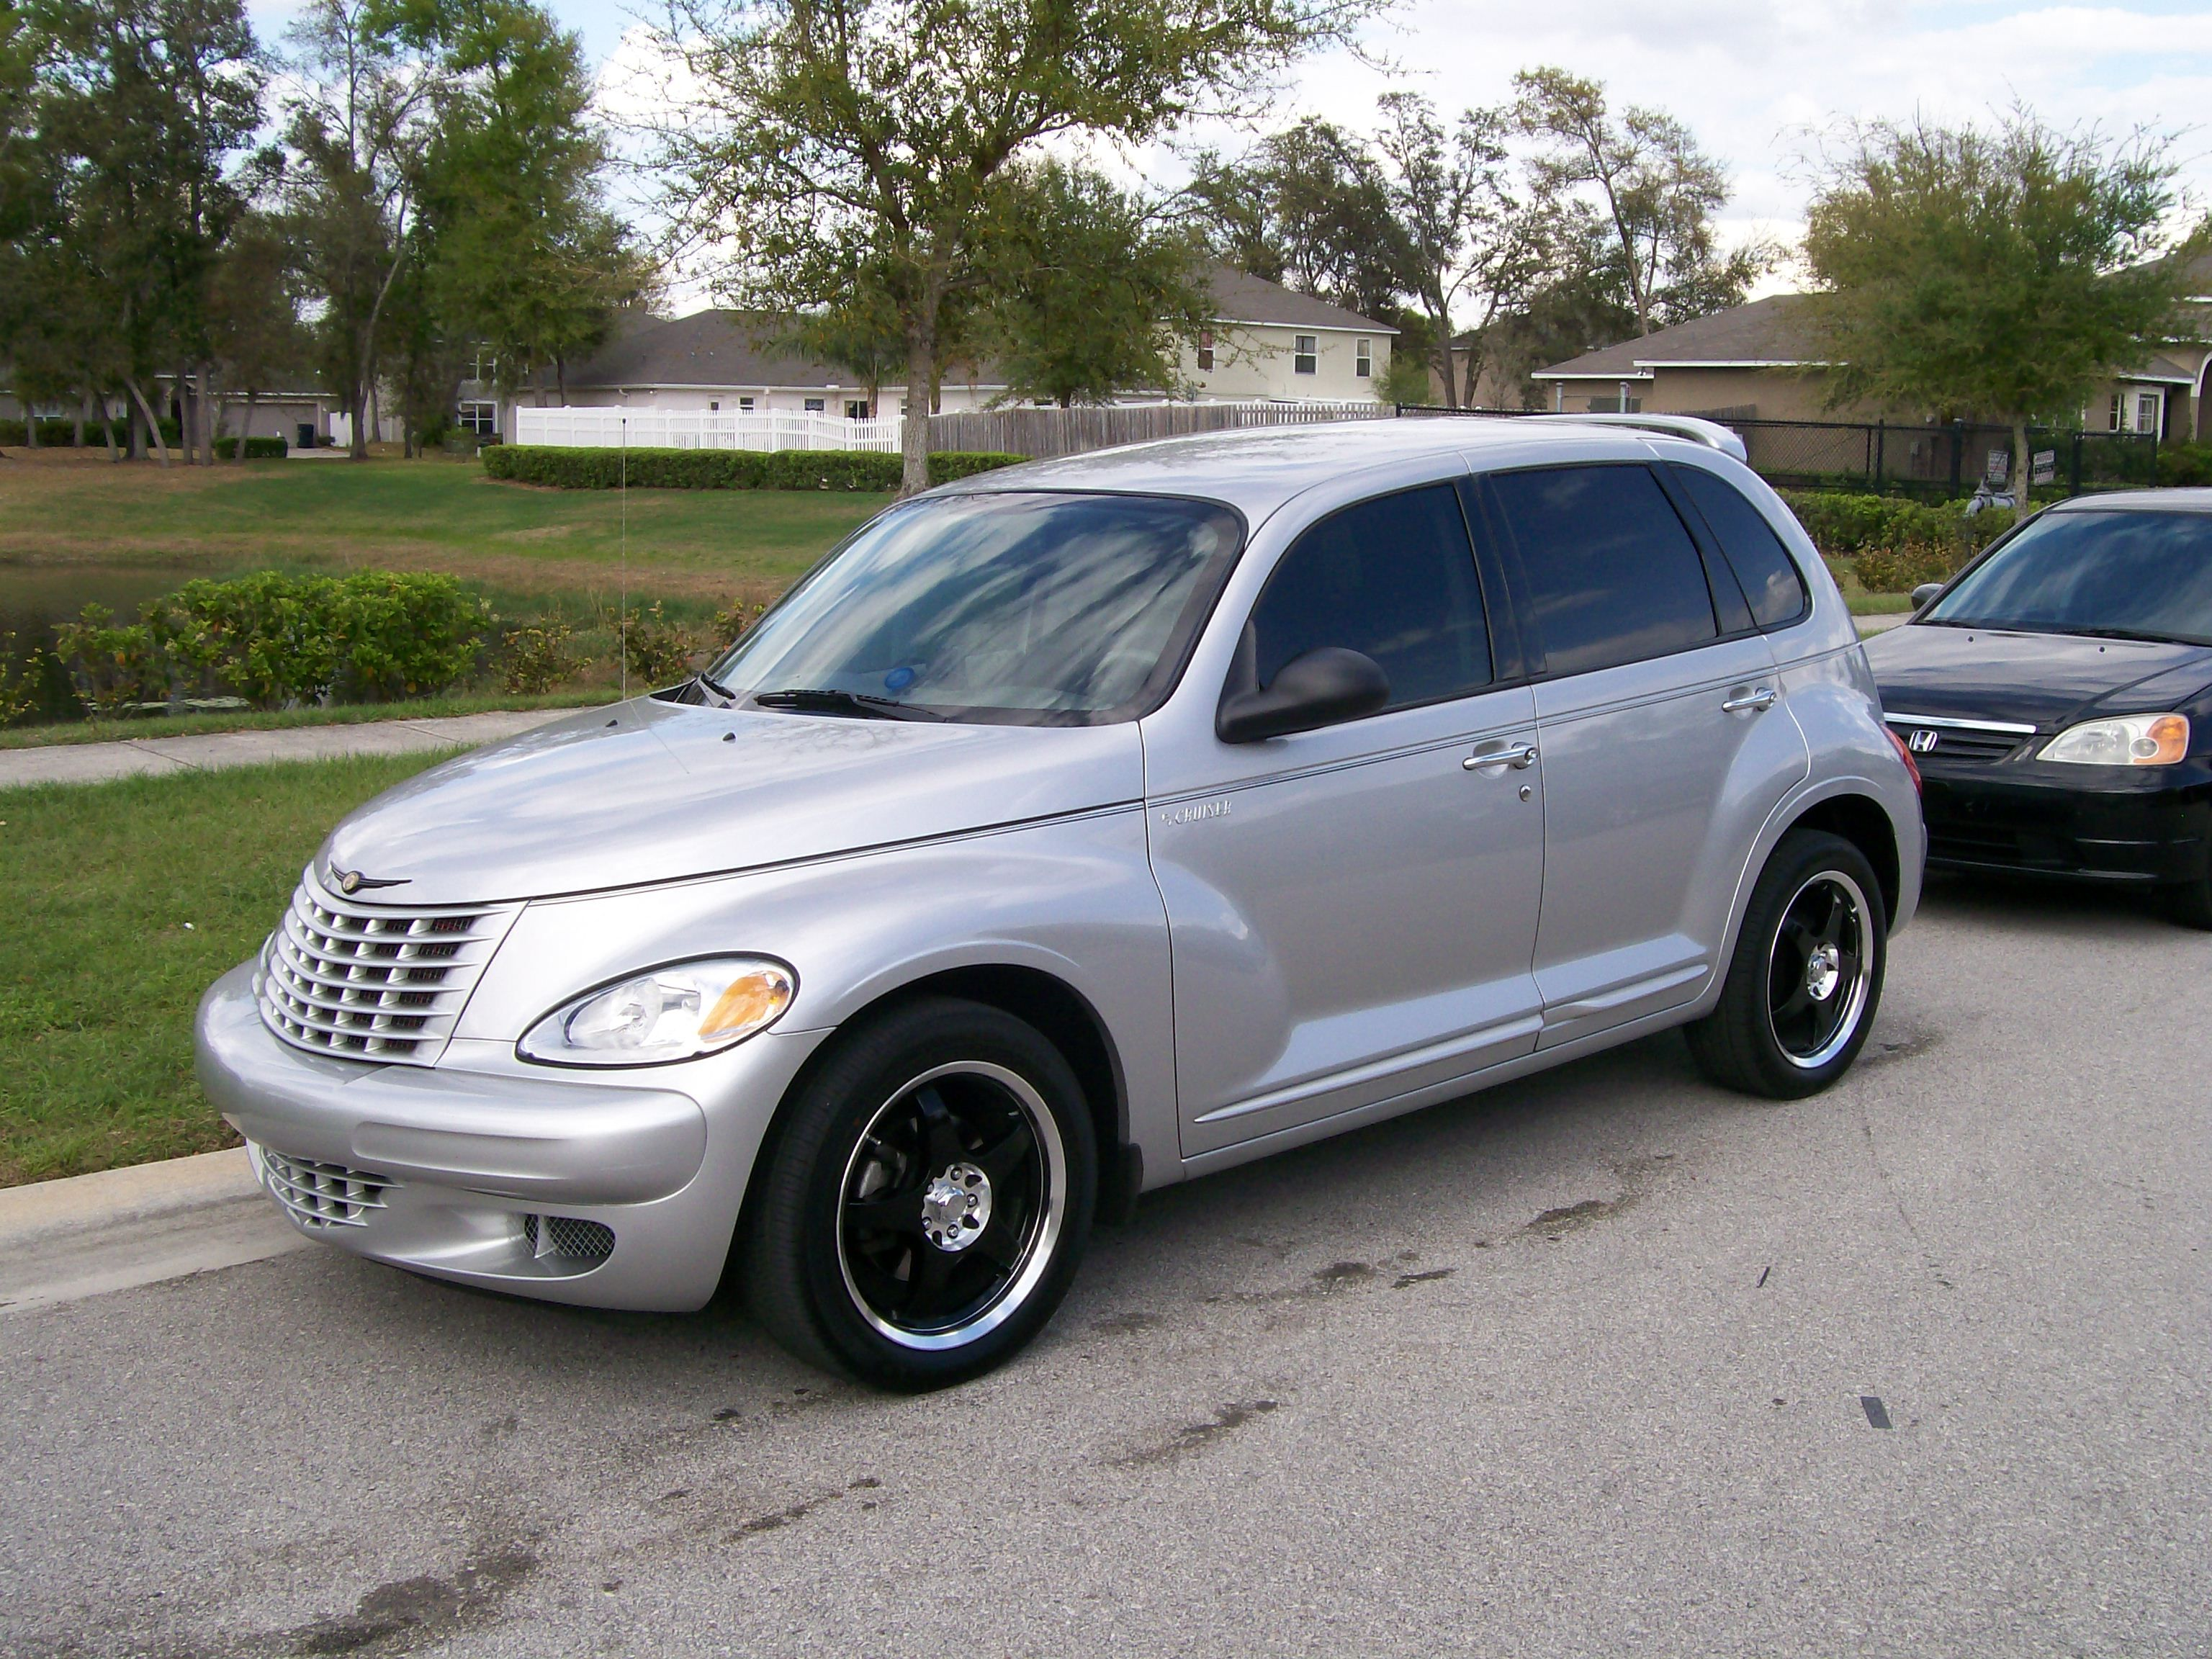 2005 Chrysler Pt Cruiser #22